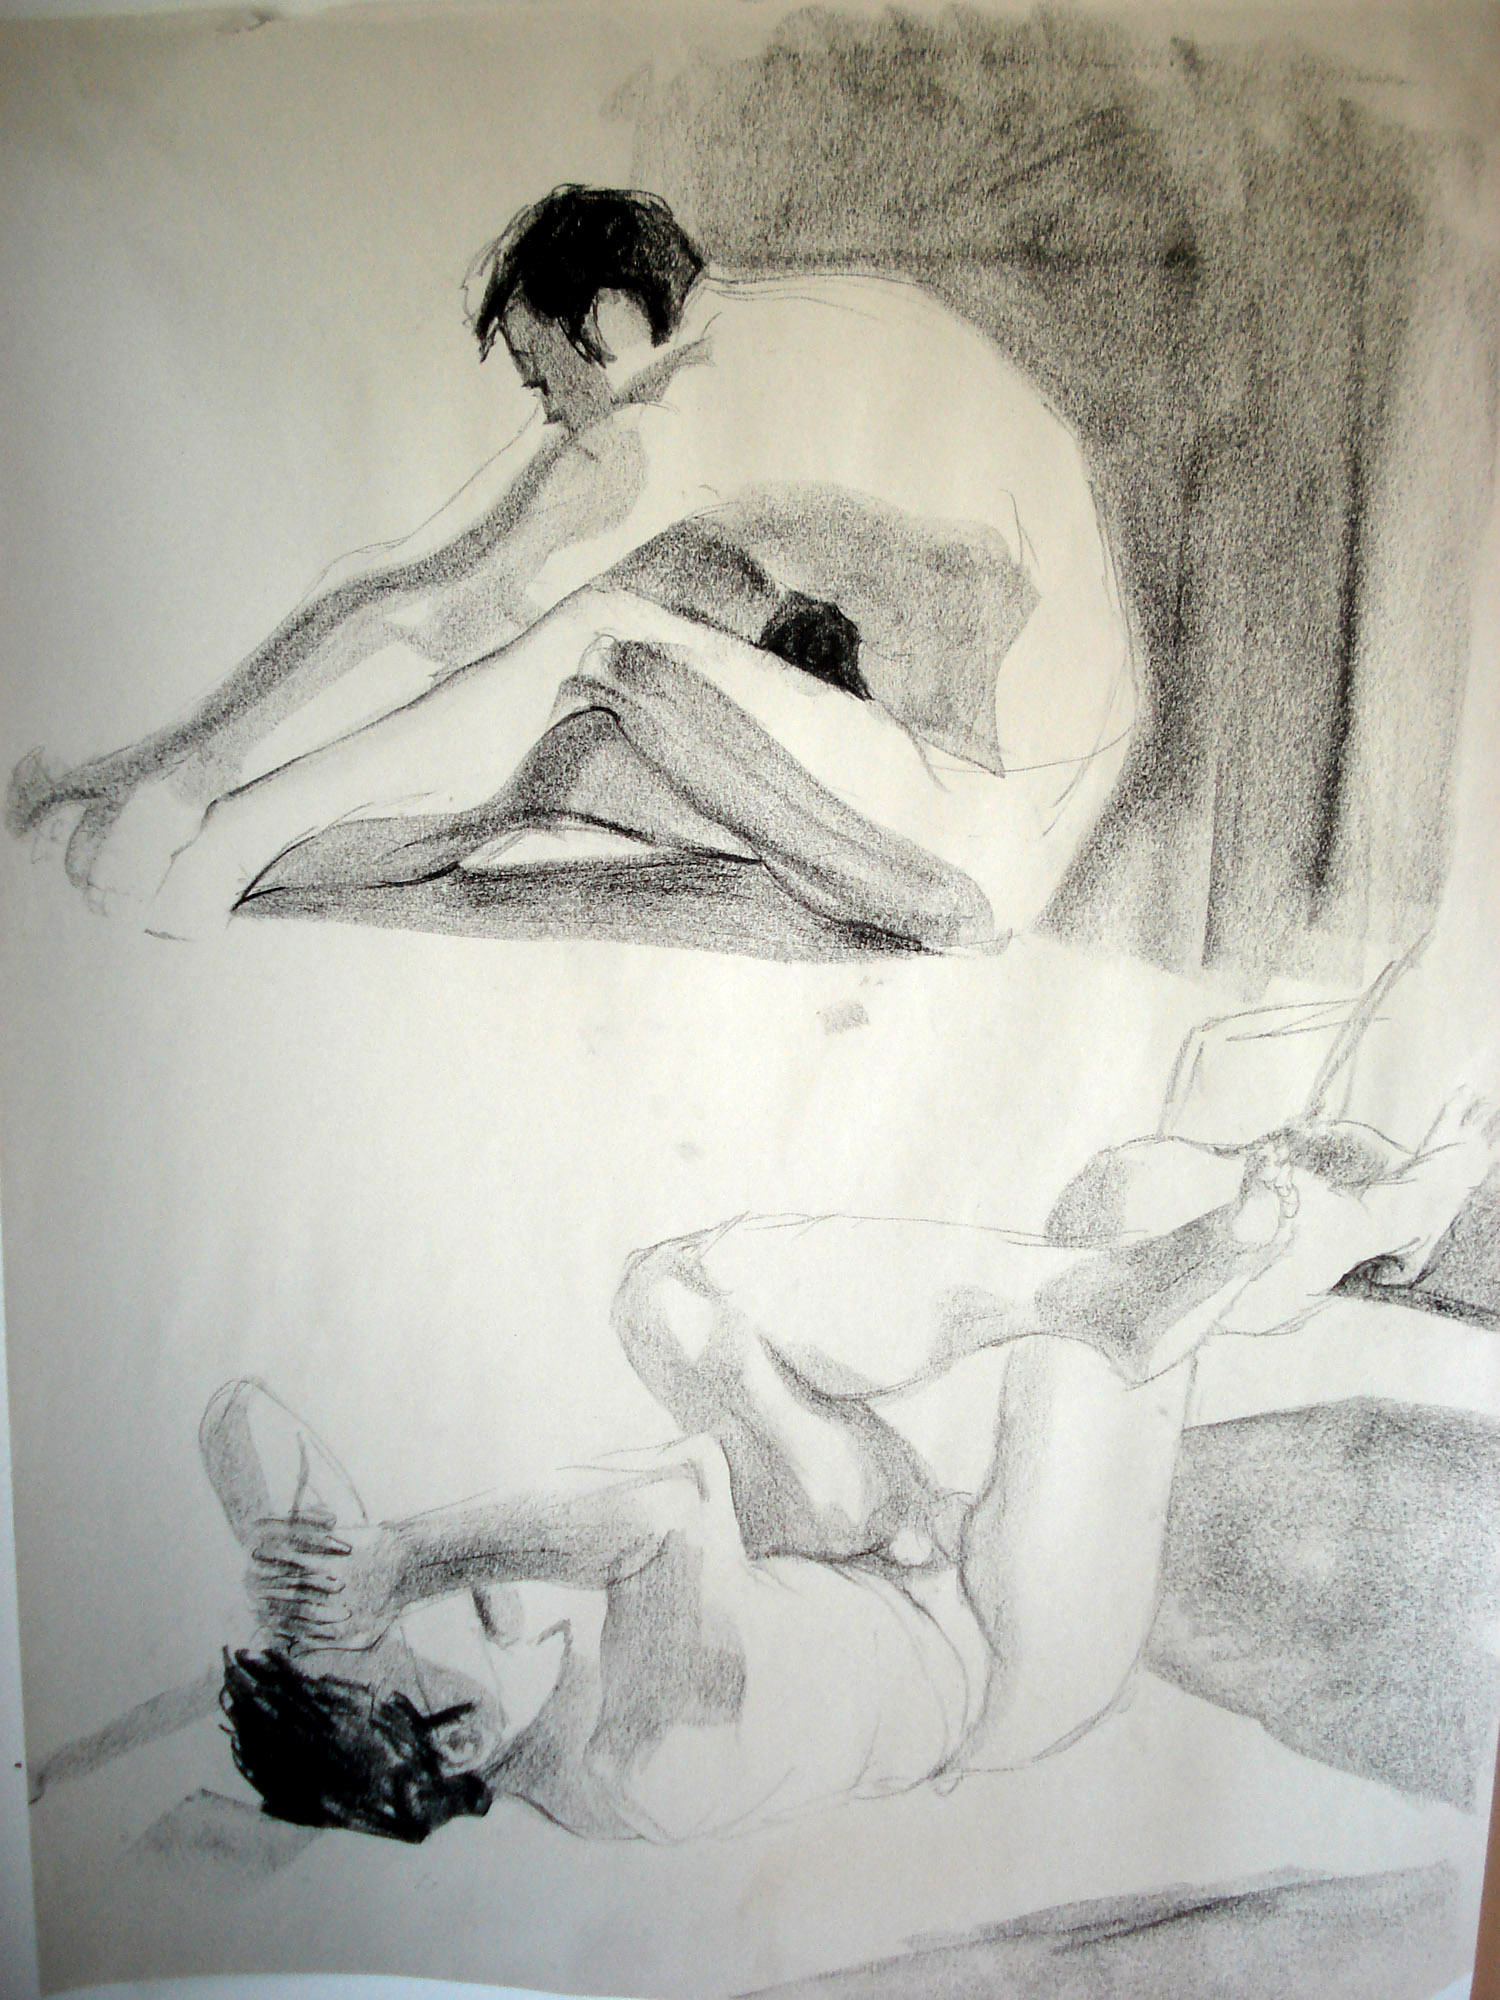 Male model in two different poses. These are between 5 and 10 minute sketches.